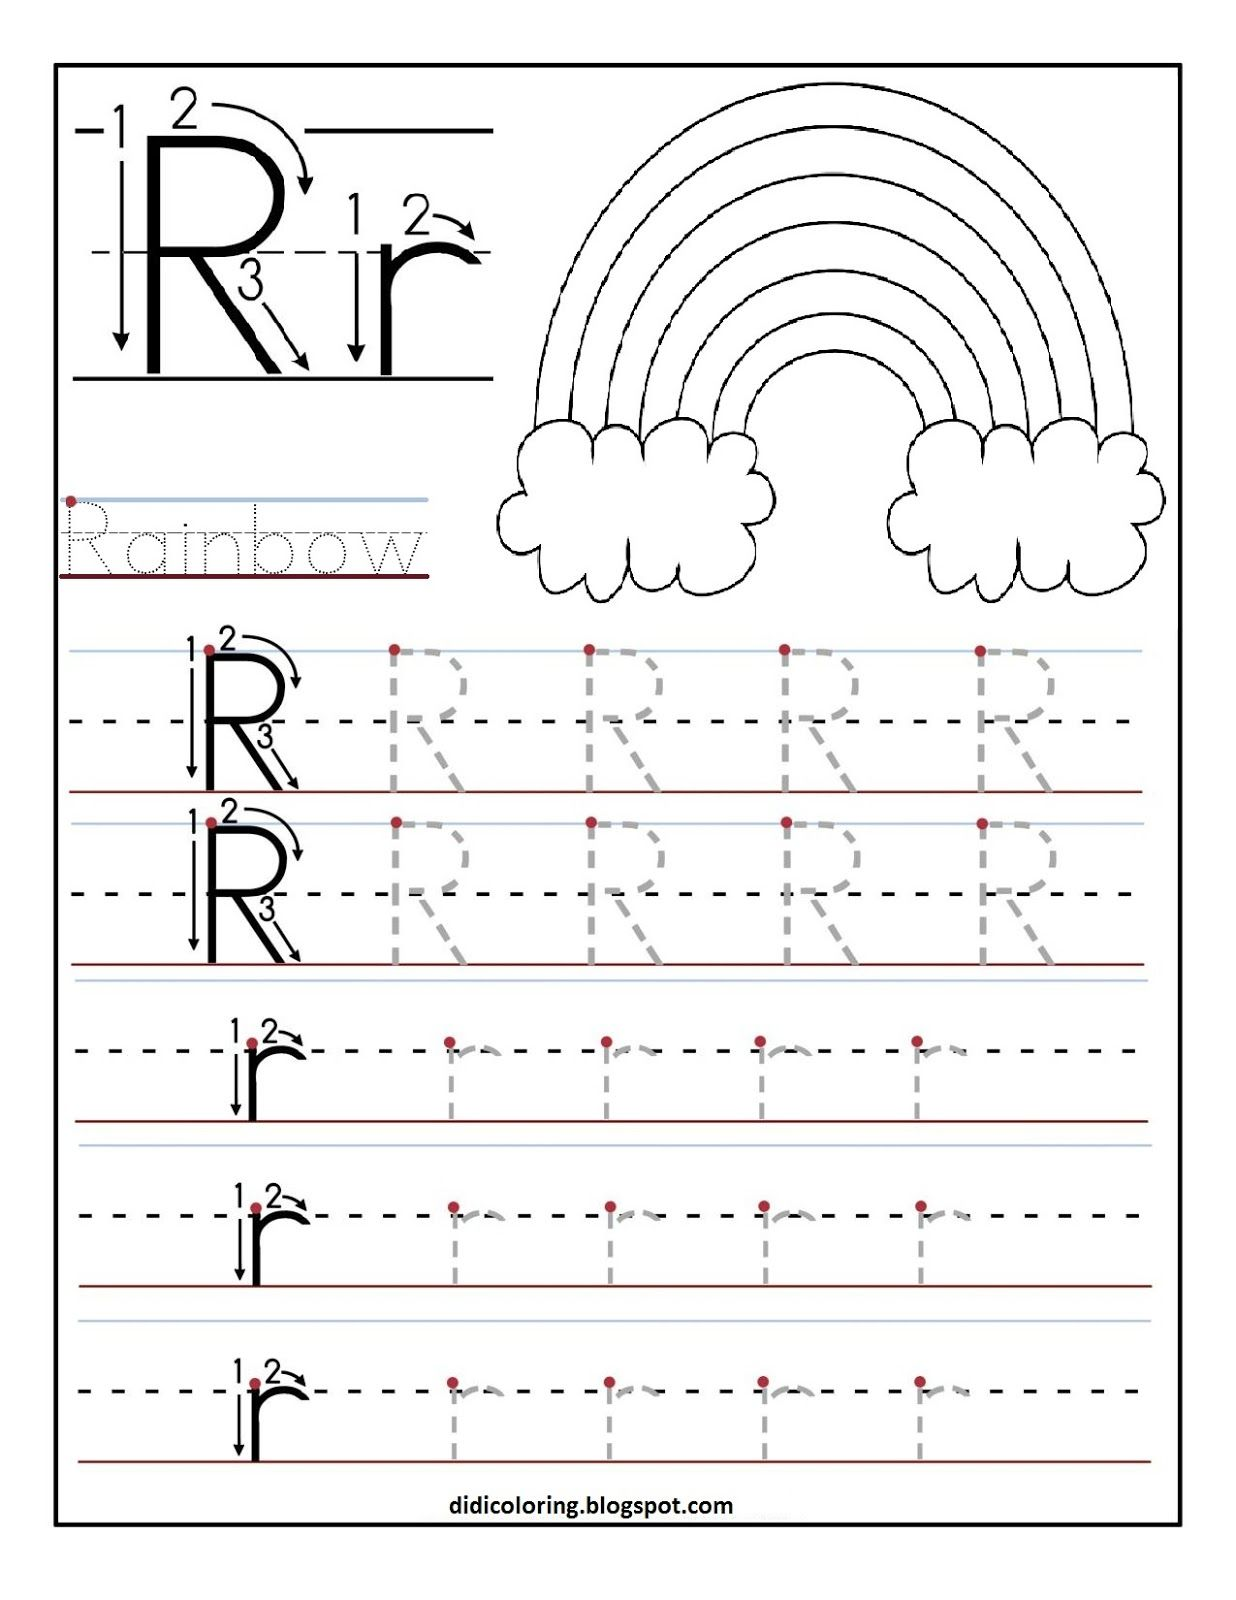 worksheet Kid Worksheets 1000 images about letter r preschool activities on pinterest maze color theory and coloring books